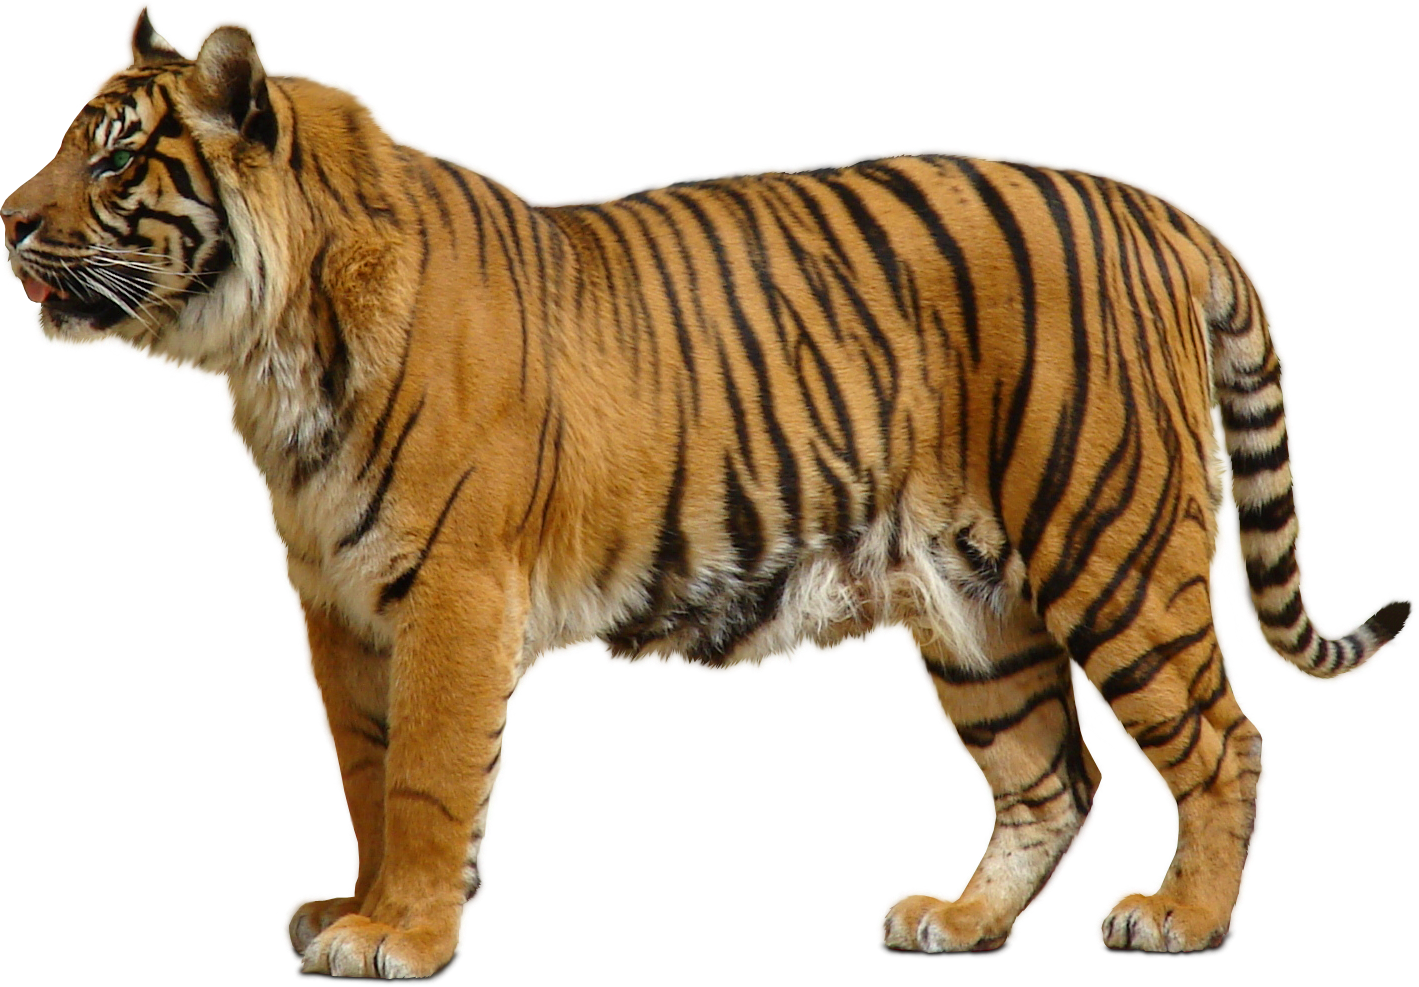 Download For Free Tiger Png In High Resolution image #39173